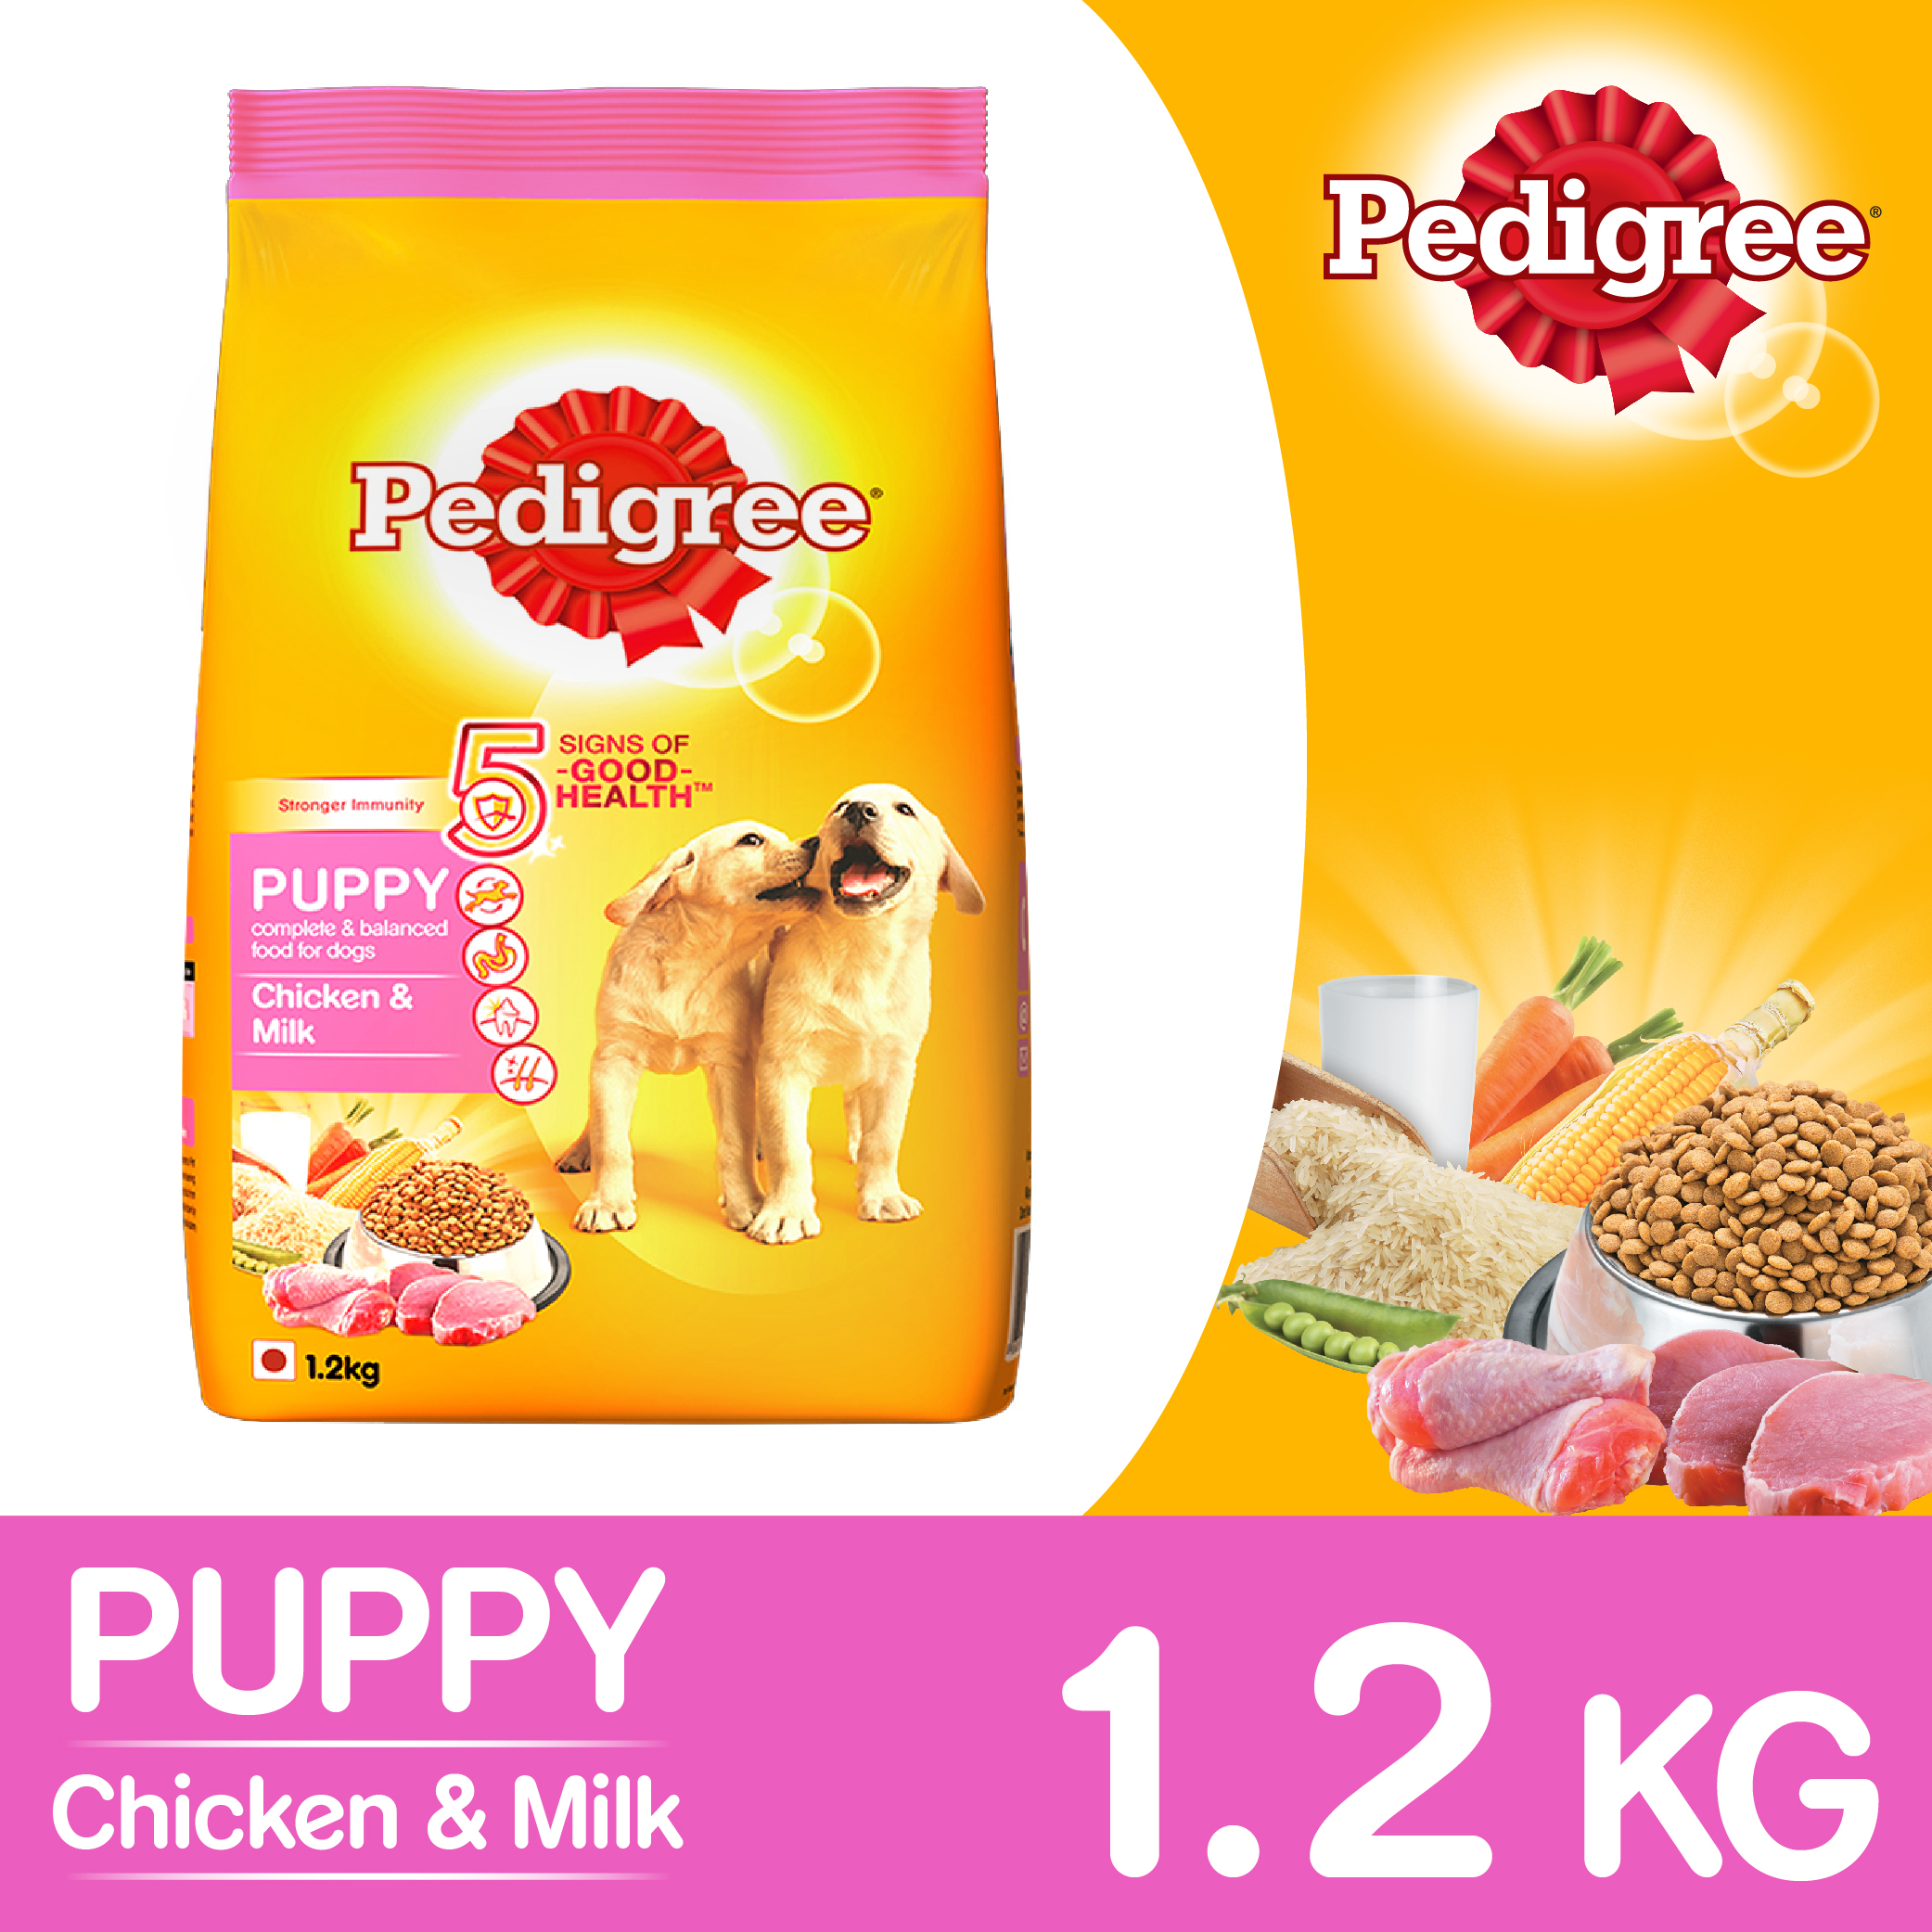 Pedigree Dog Food Puppy Chicken Amp Milk 1 2 Kg Dogspot